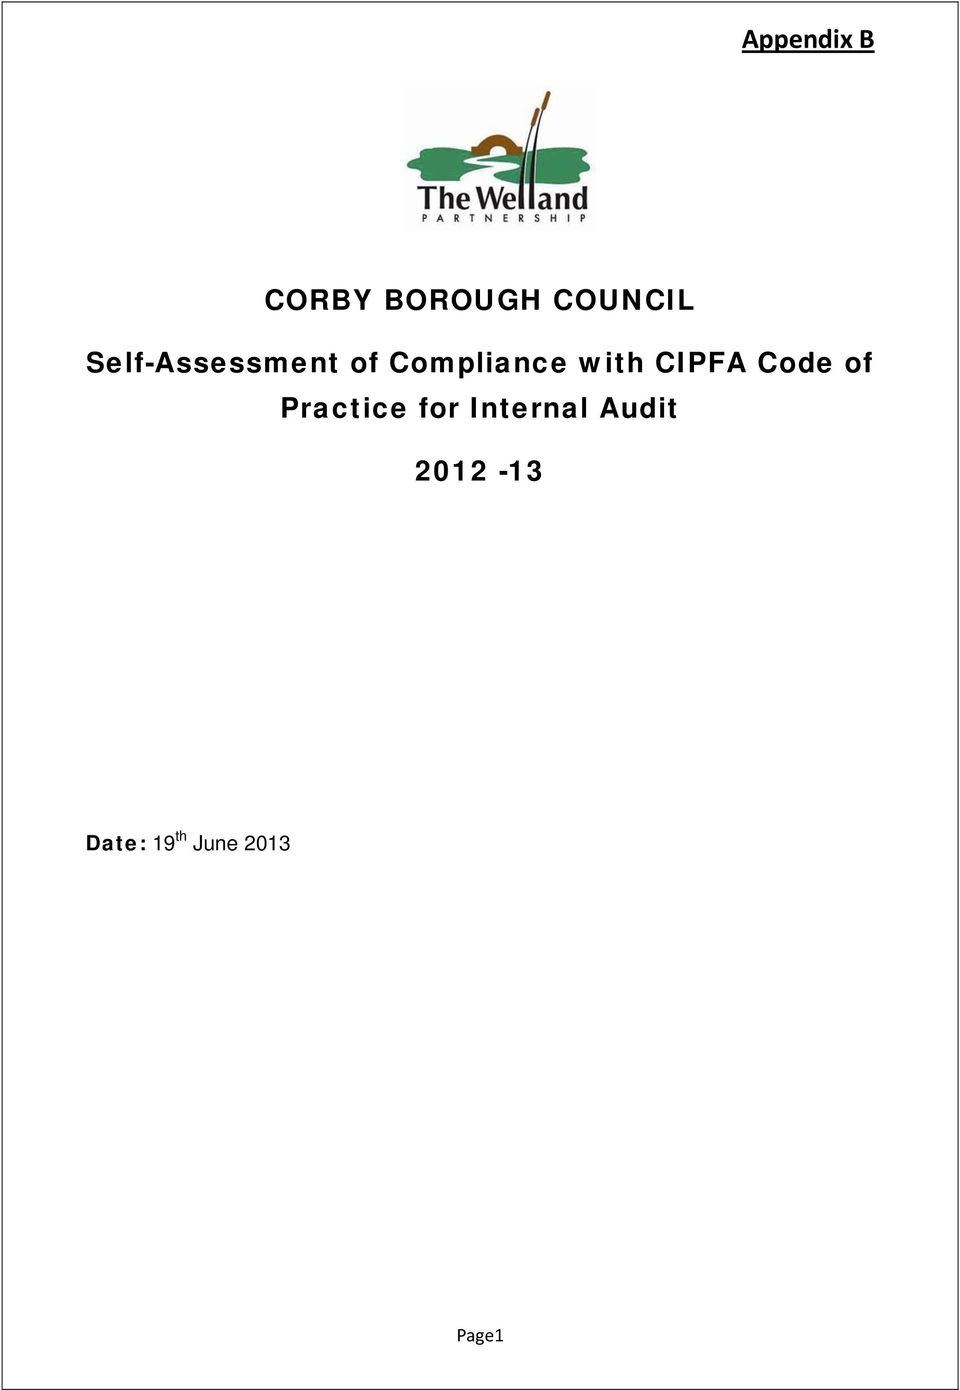 CIPFA Code of Practice for Internal